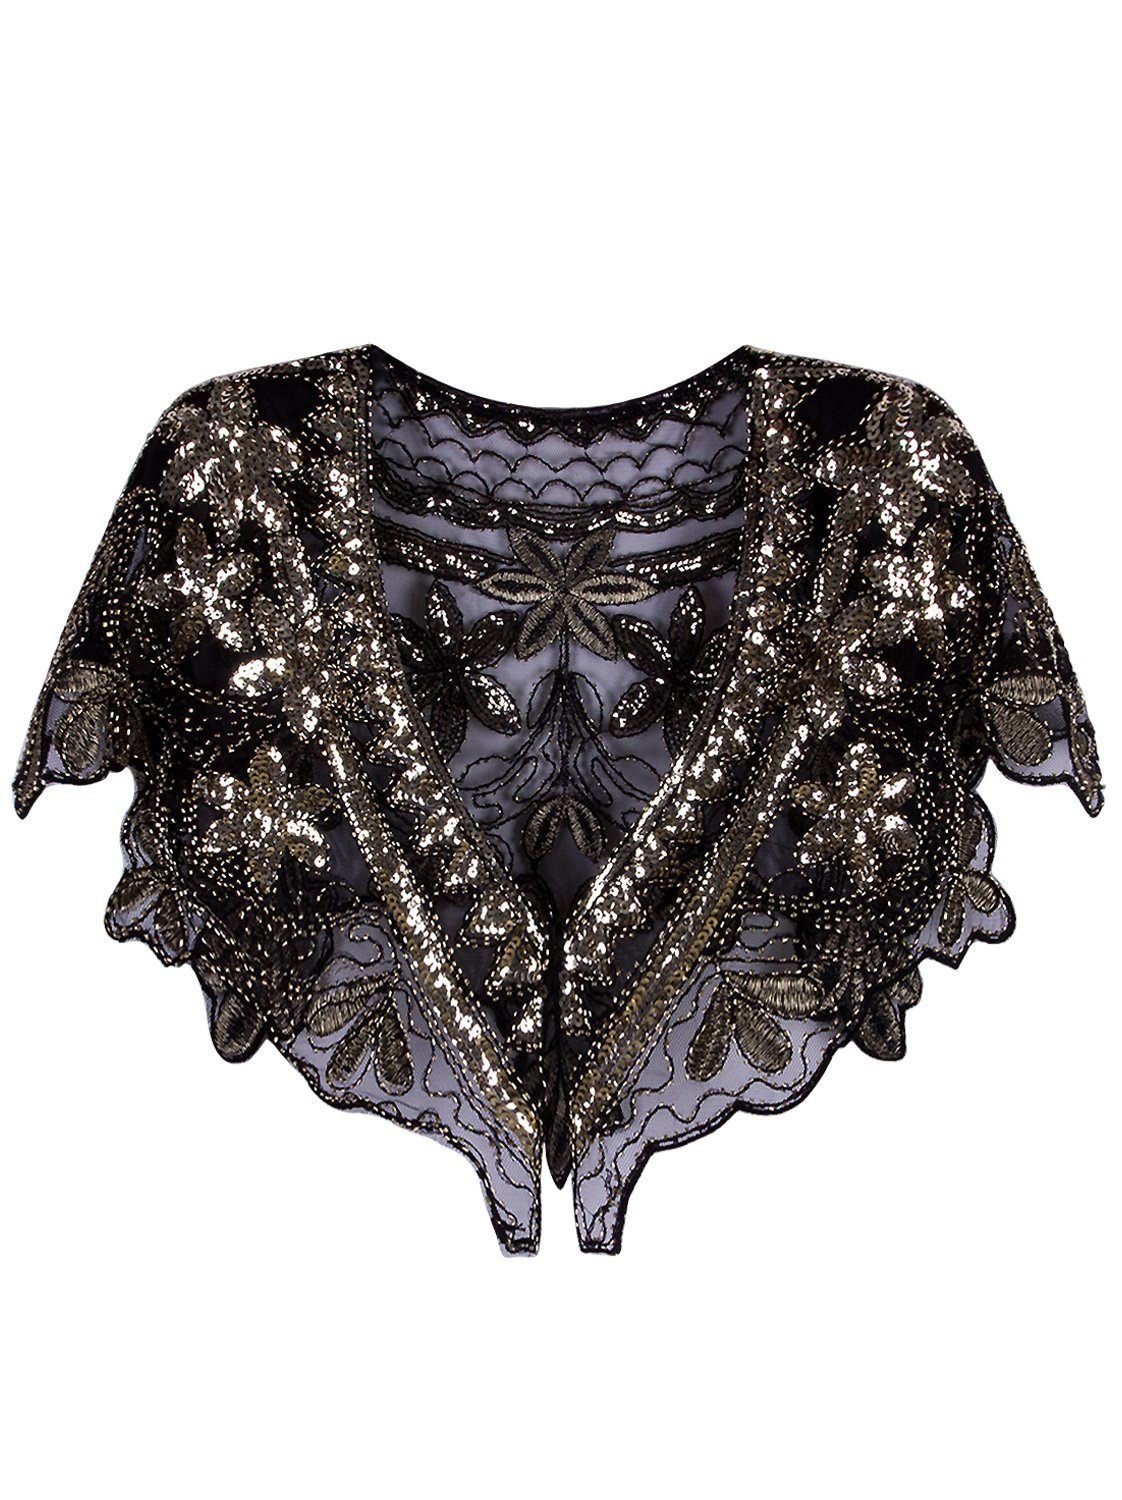 Vijiv Women's 1920s Shawl Deco Sequin Beaded Evening Cape Bolero Flapper Cover Up For Wedding Black Gold